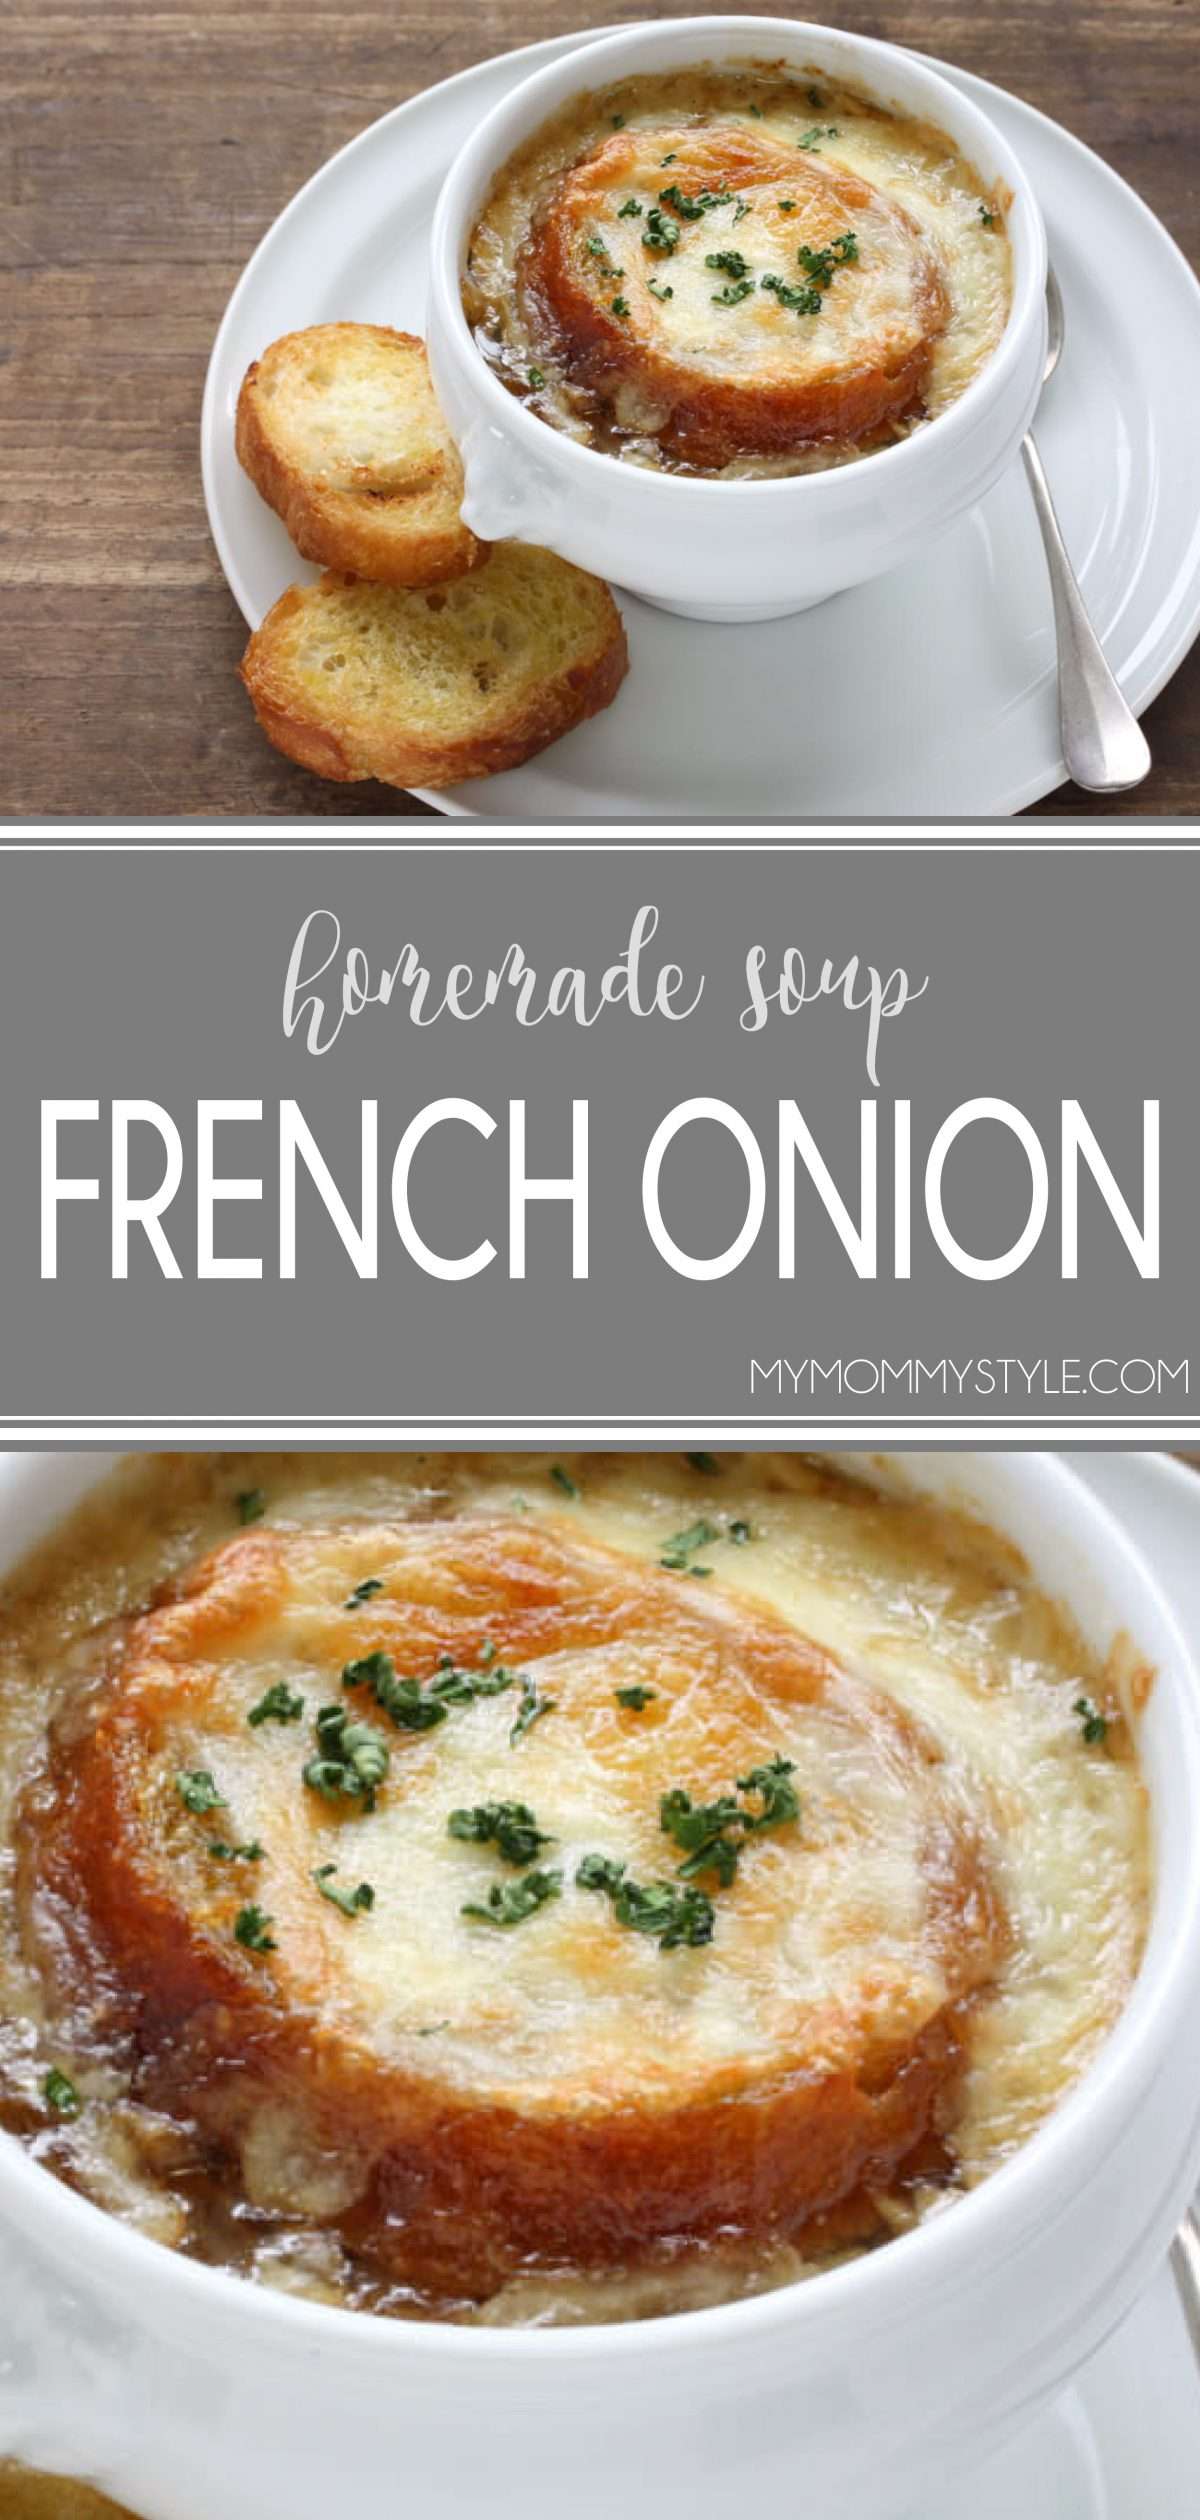 This french onion soup recipe has been shared by a french family and is well worth making from scratch! via @mymommystyle